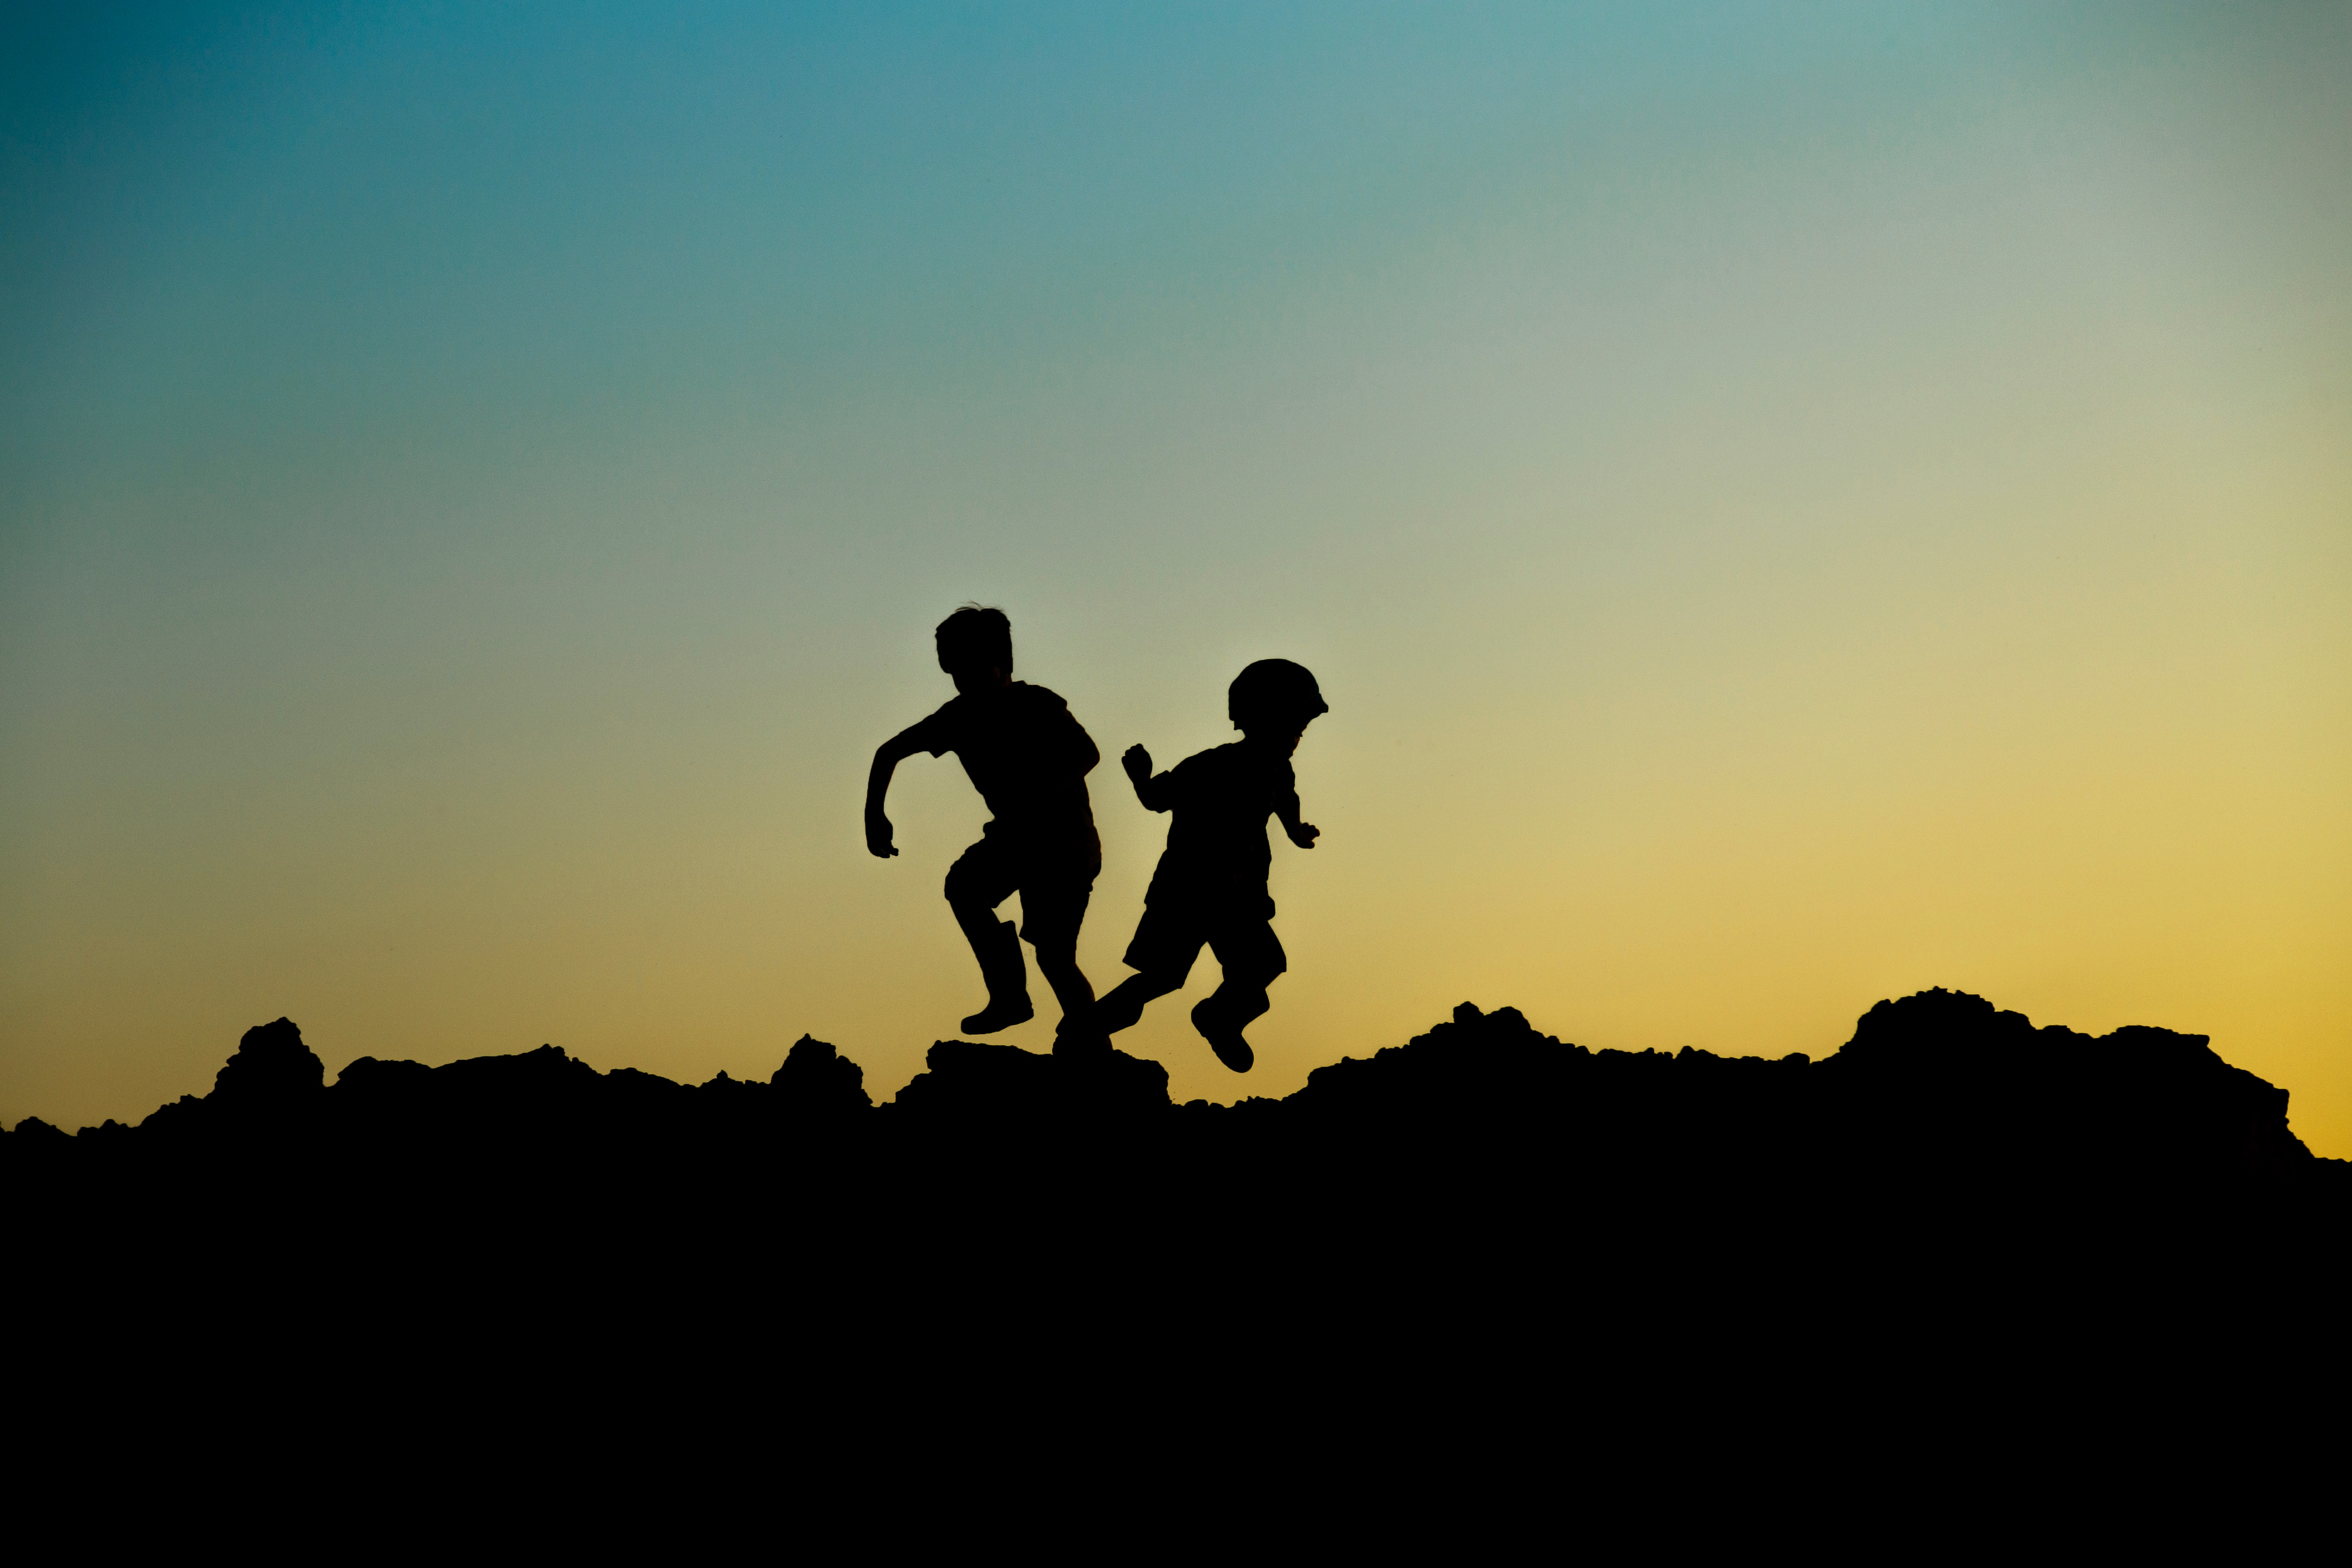 Children, the rights of the child and greenhouse gases